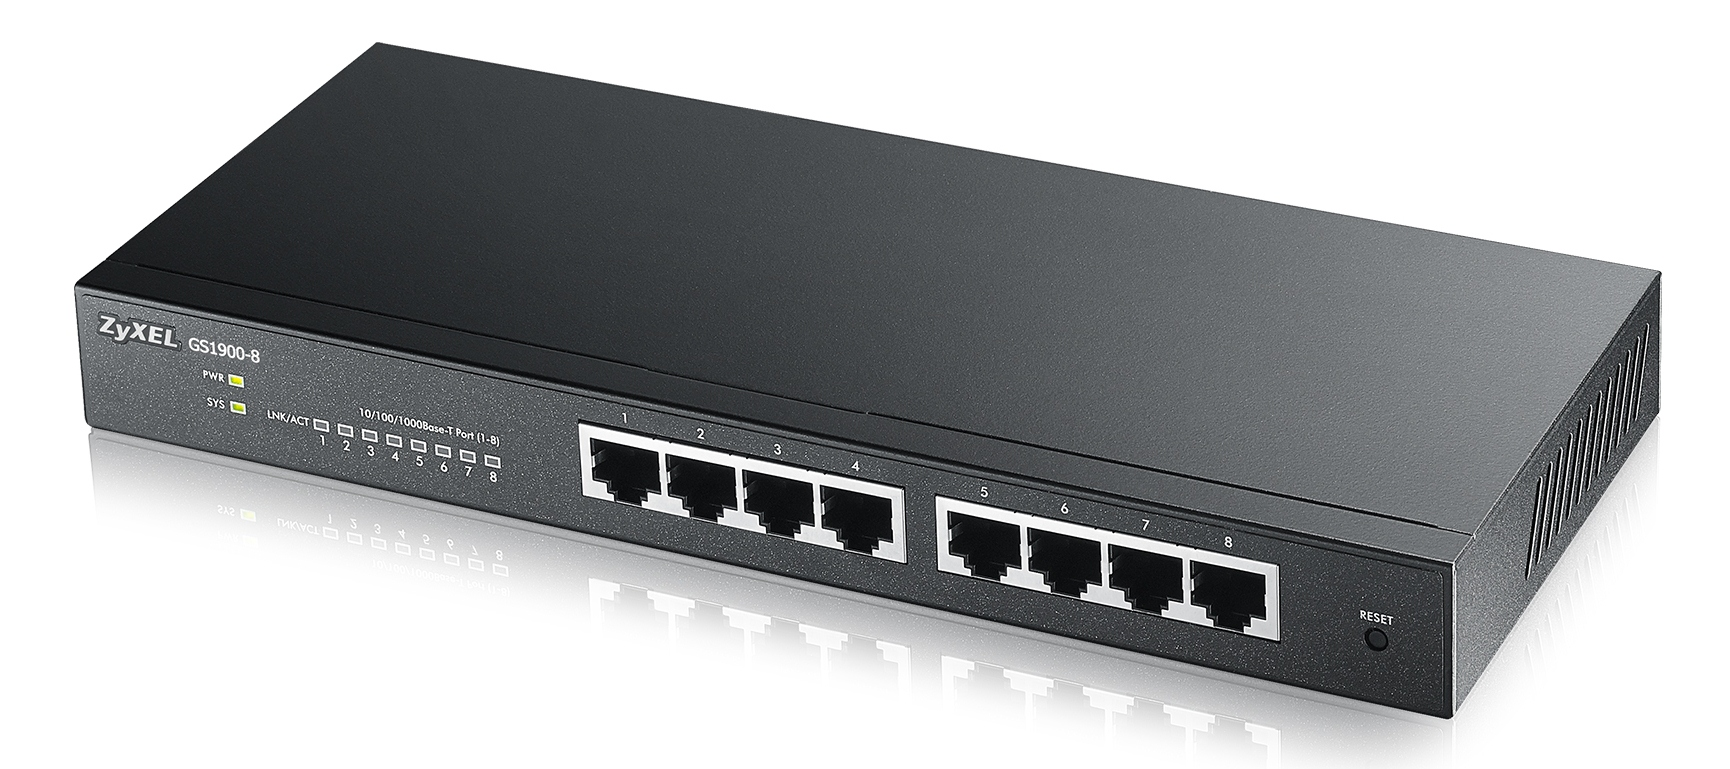 Zyxel GS1900-8, 8-port Desktop Gigabit Web Smart switch: 8x Gigabit metal, IPv6, 802.3az (Green), Easy set up wizard, fa